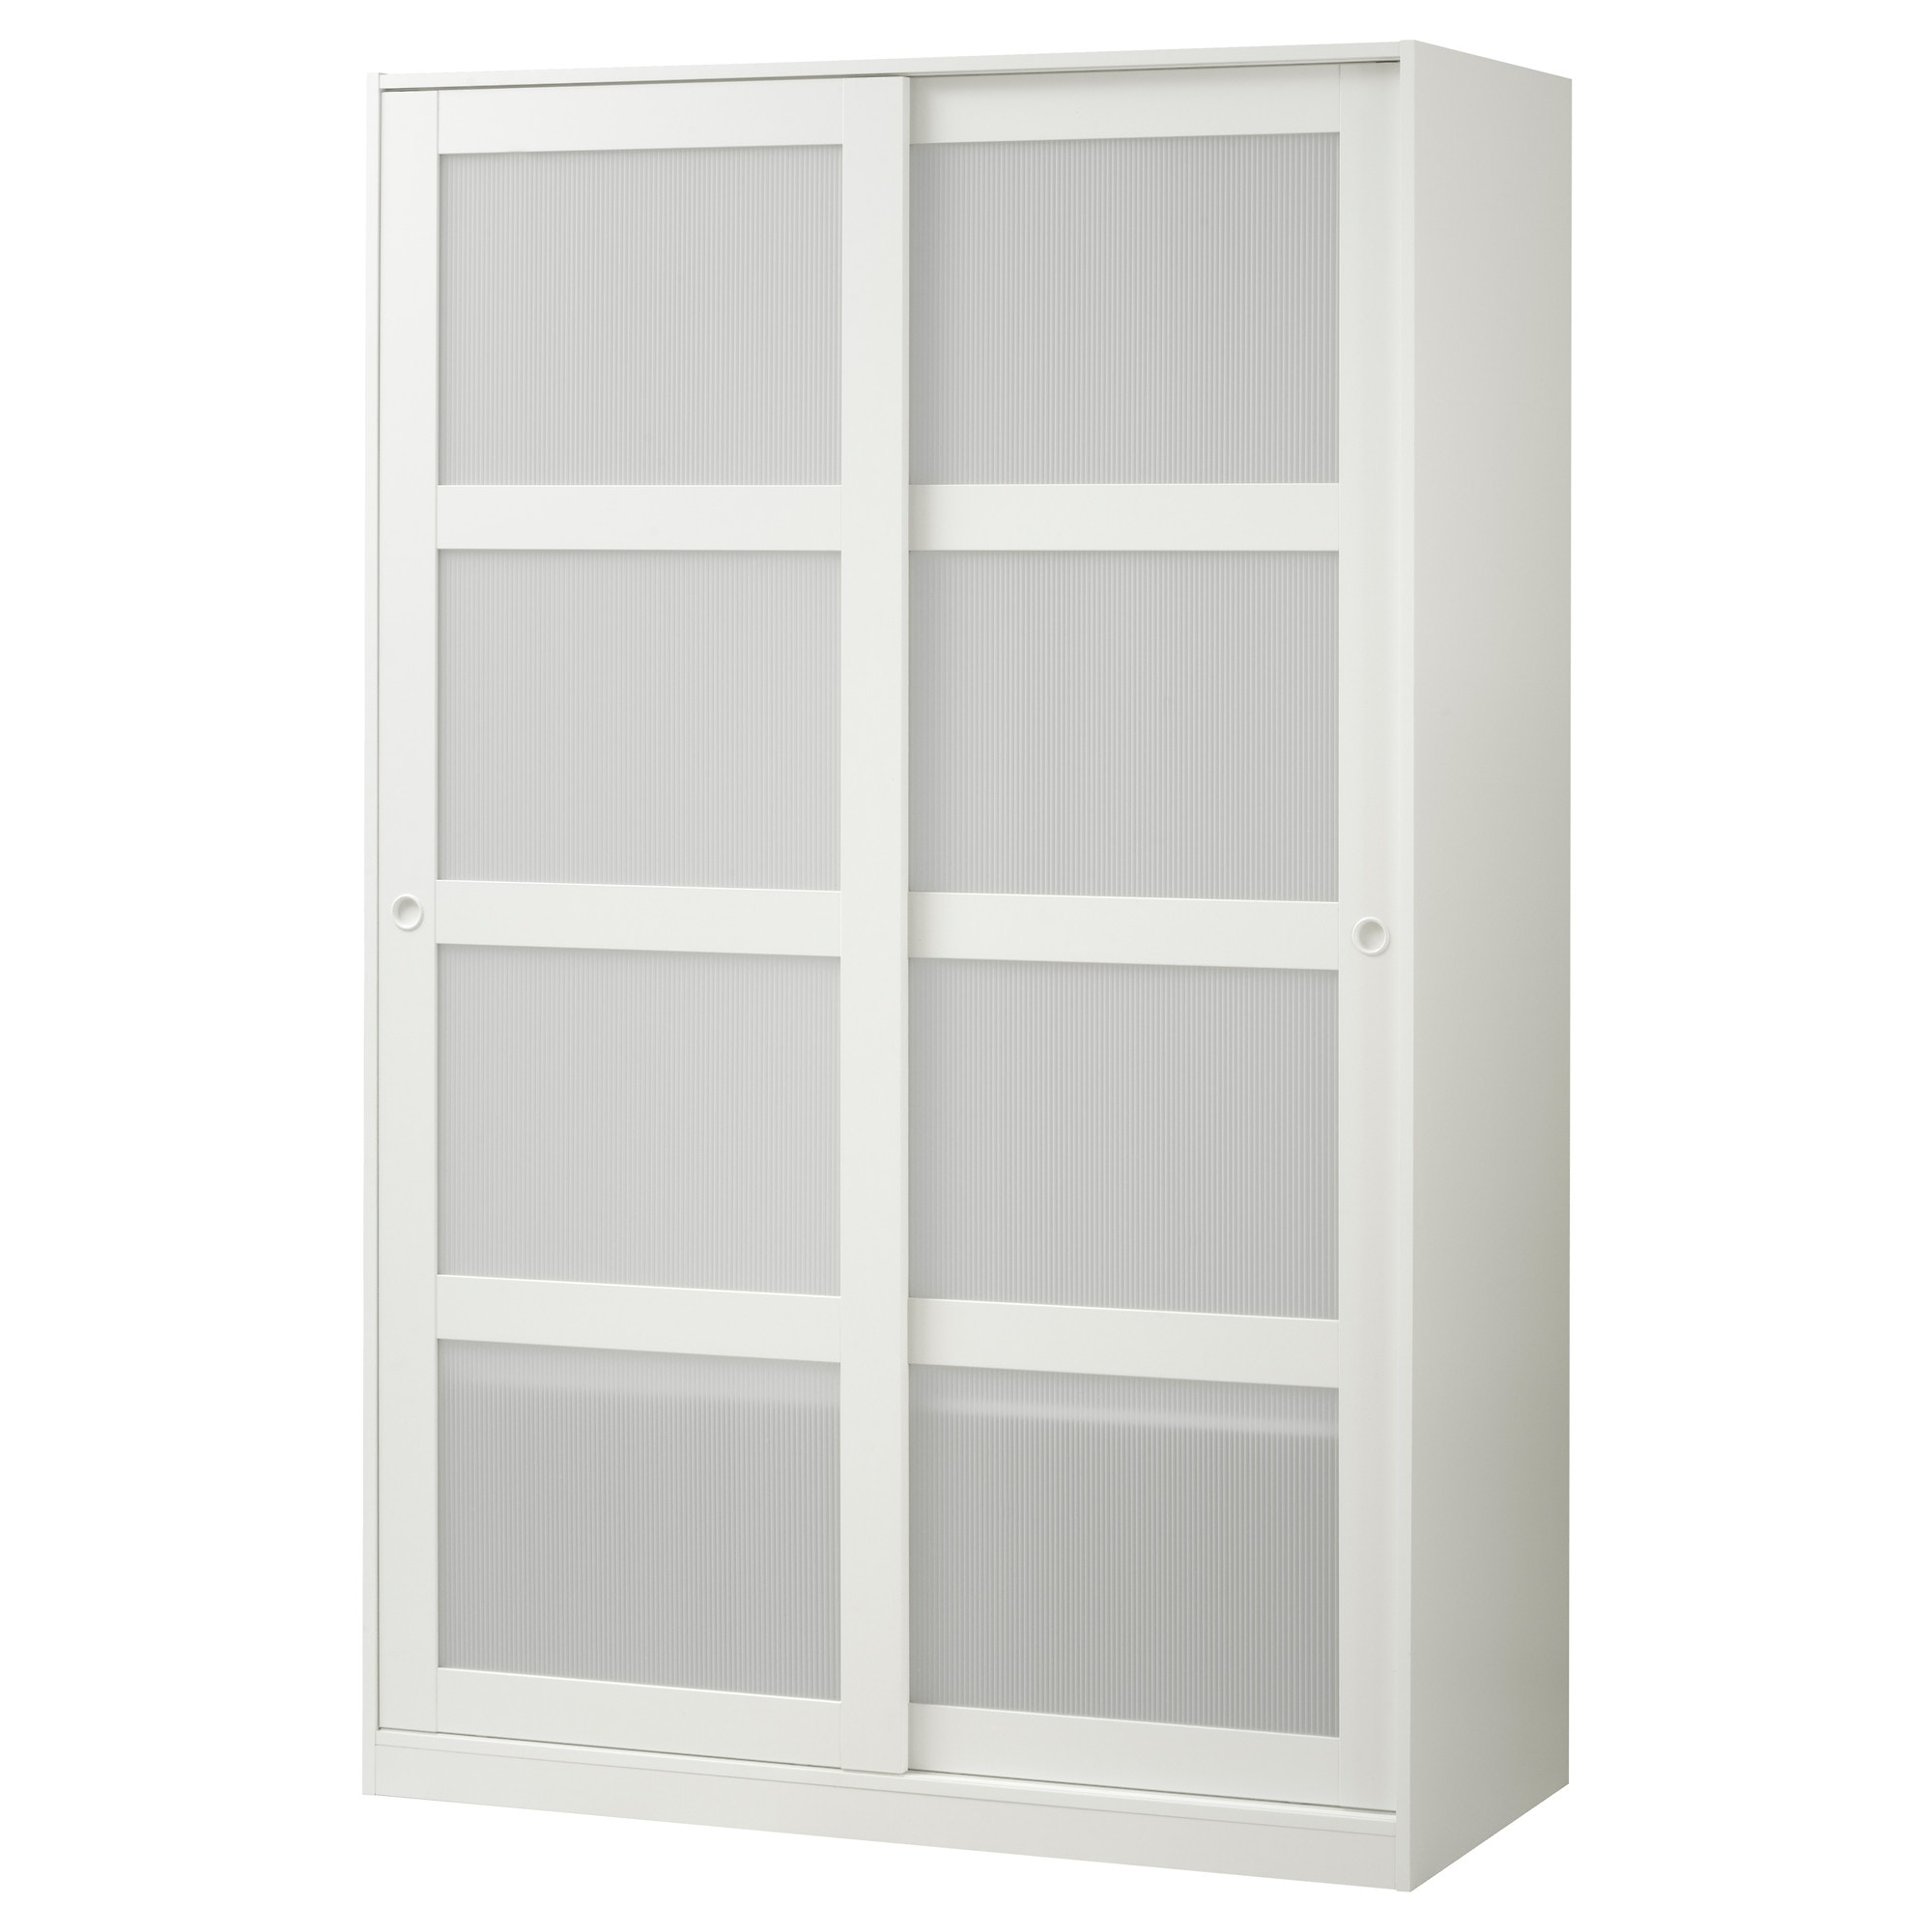 KVIKNE wardrobe with 2 sliding doors  white Width  47 1 4   Depth. Wardrobes  Armoires   Closets   IKEA